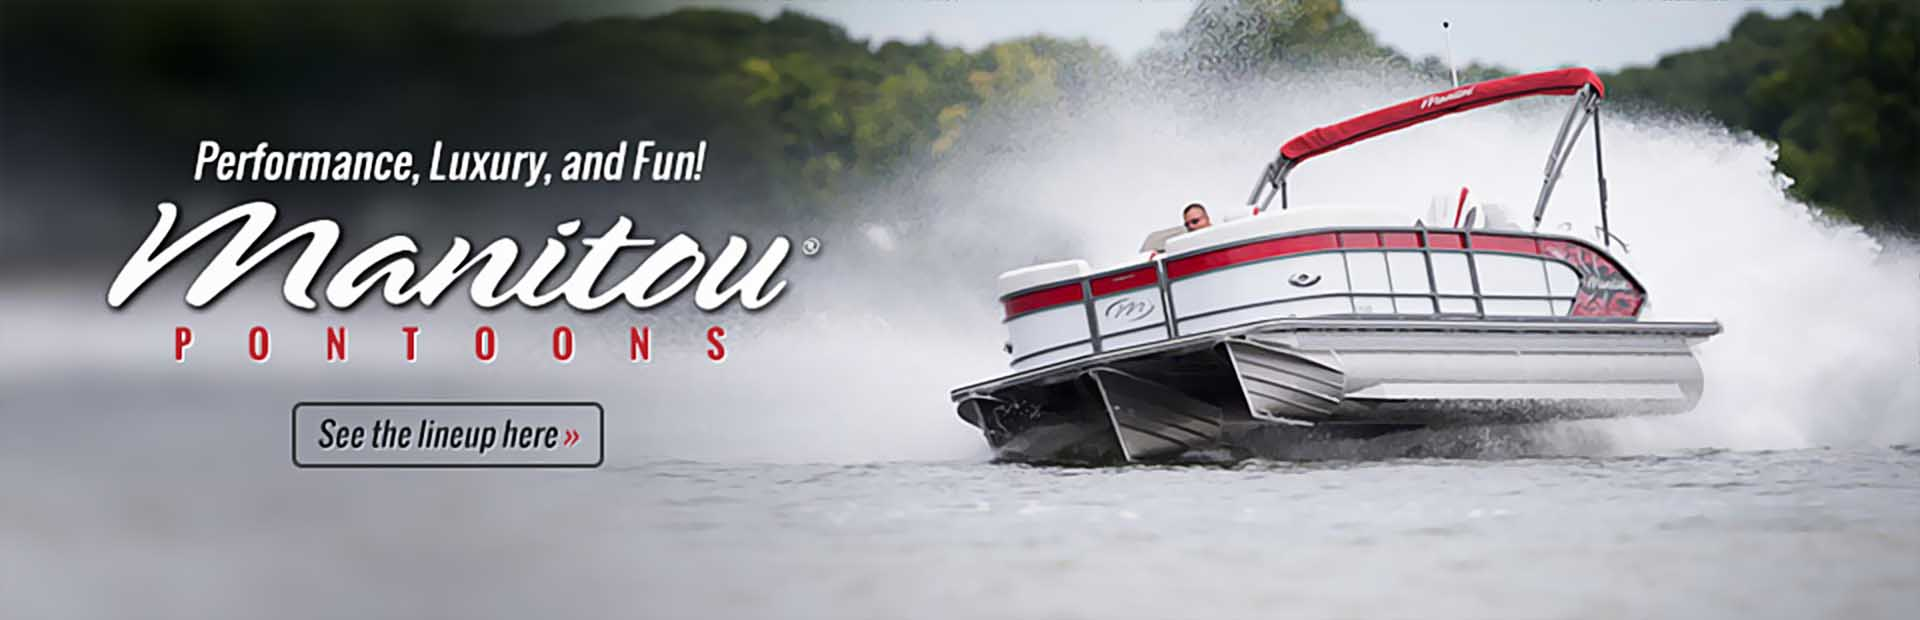 Manitou Pontoons: Click here to view the lineup.